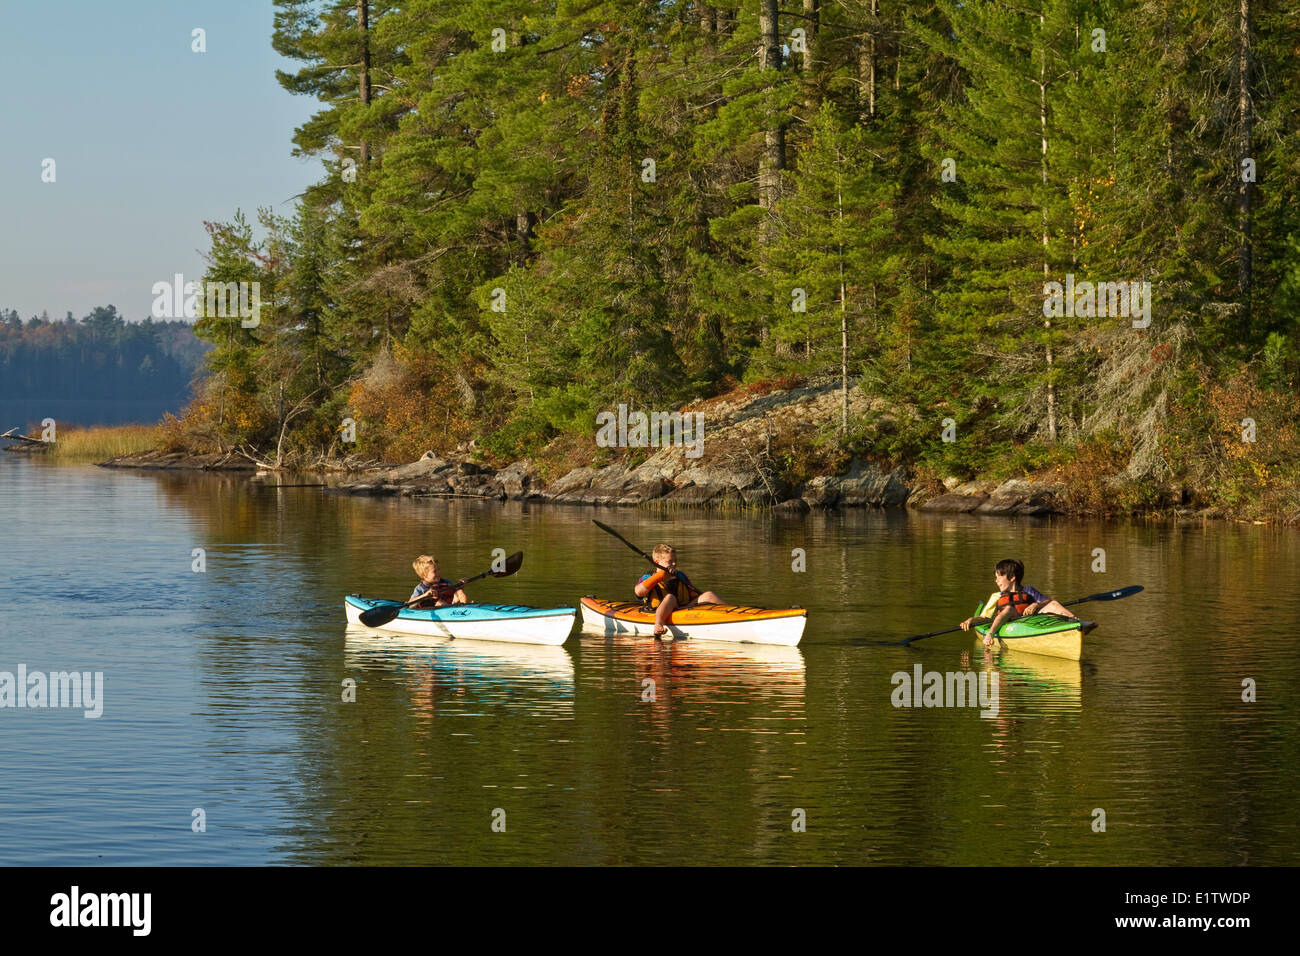 Three young boys paddle kayaks on Source Lake, Algonquin  Park ,Ontario, Canada. - Stock Image